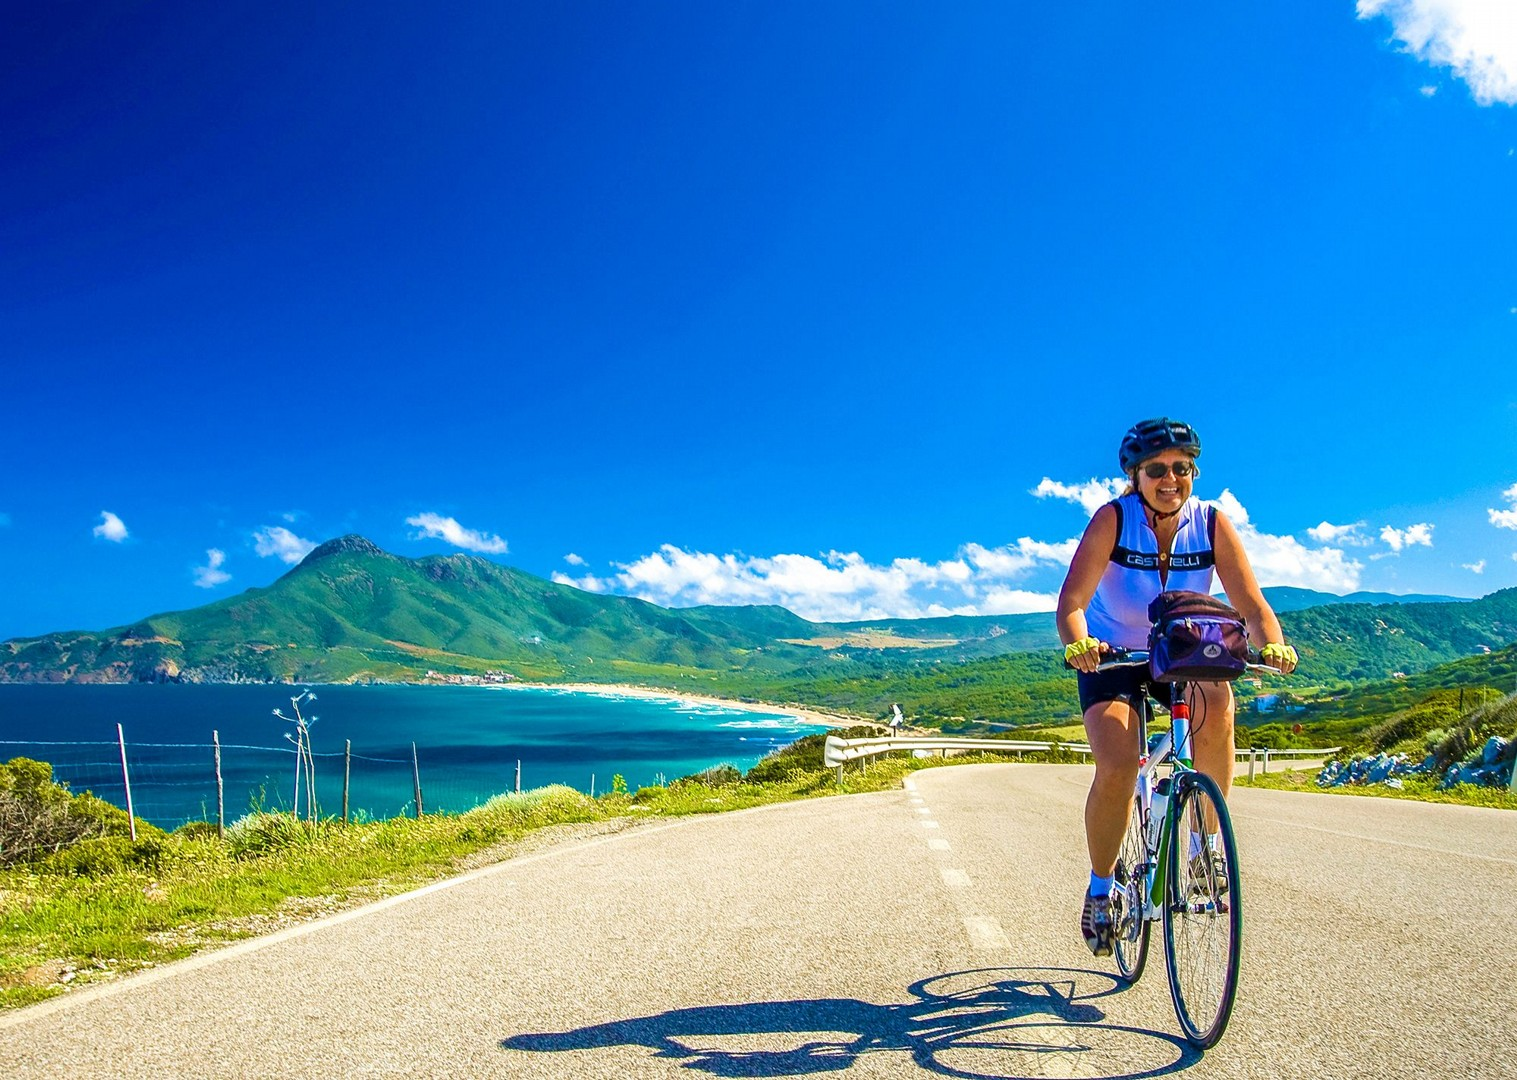 leisure-self-guided-cycling-holiday-italy-sardinia.jpg - Italy - Sardinia - Island Flavours - Self-Guided Leisure Cycling Holiday - Leisure Cycling